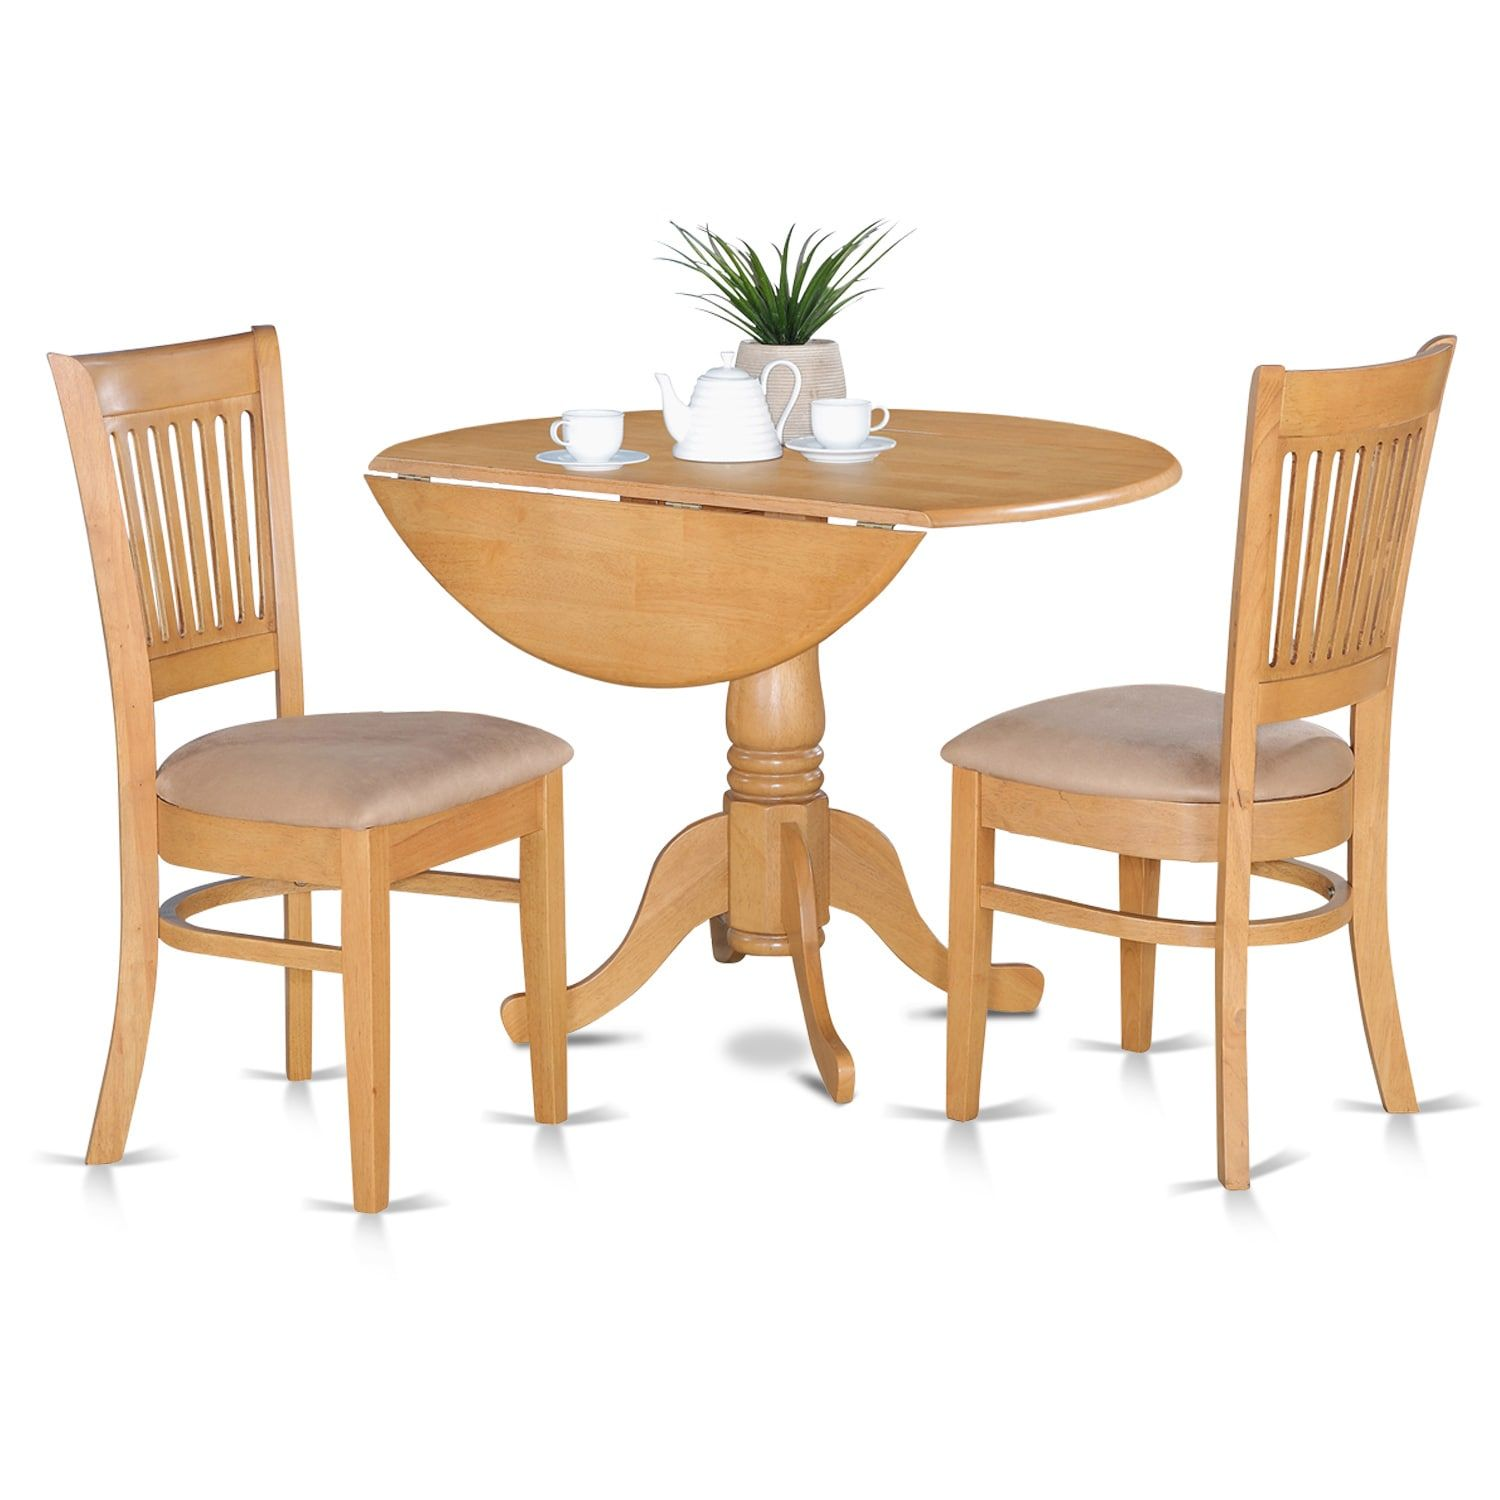 Small kitchen table and 2 chairs  Laurel Creek Daulton Oak Kitchen Table and  Slat Back Chairs Brown